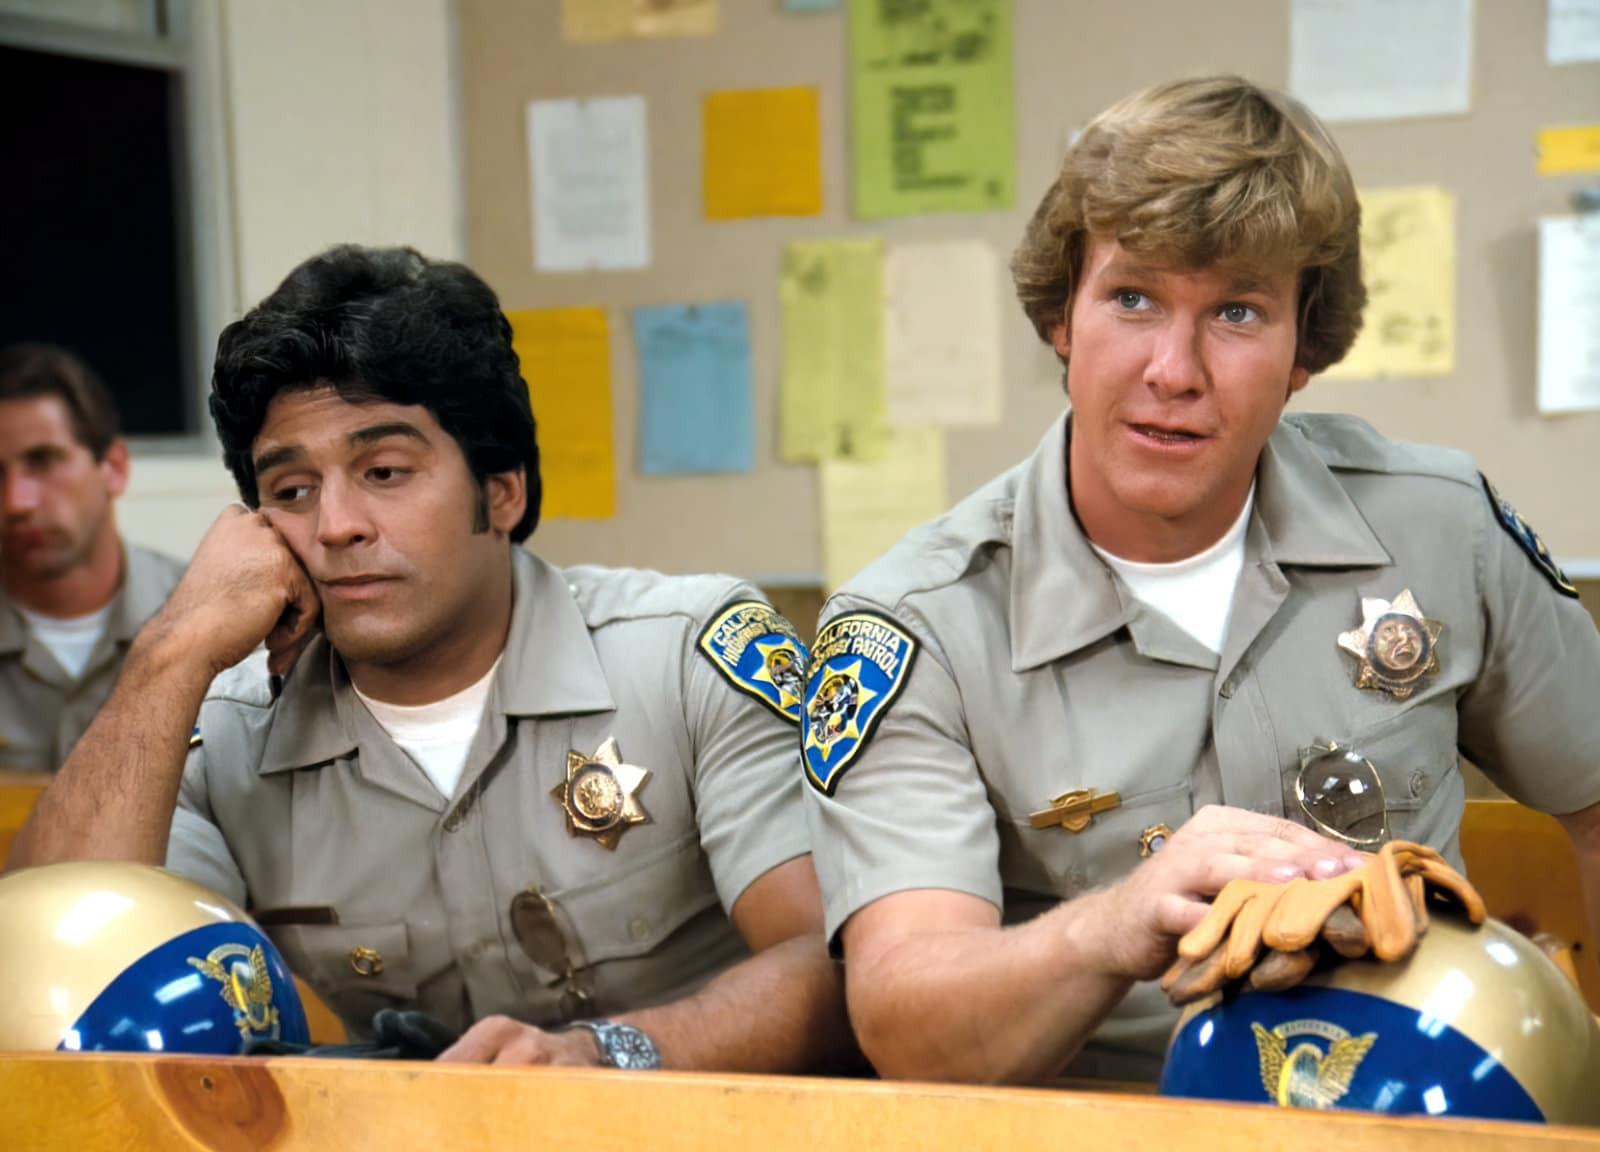 CHiPs TV motorcycle cops Ponch and John 10 Things You Might Not Have Realised About CHiPs